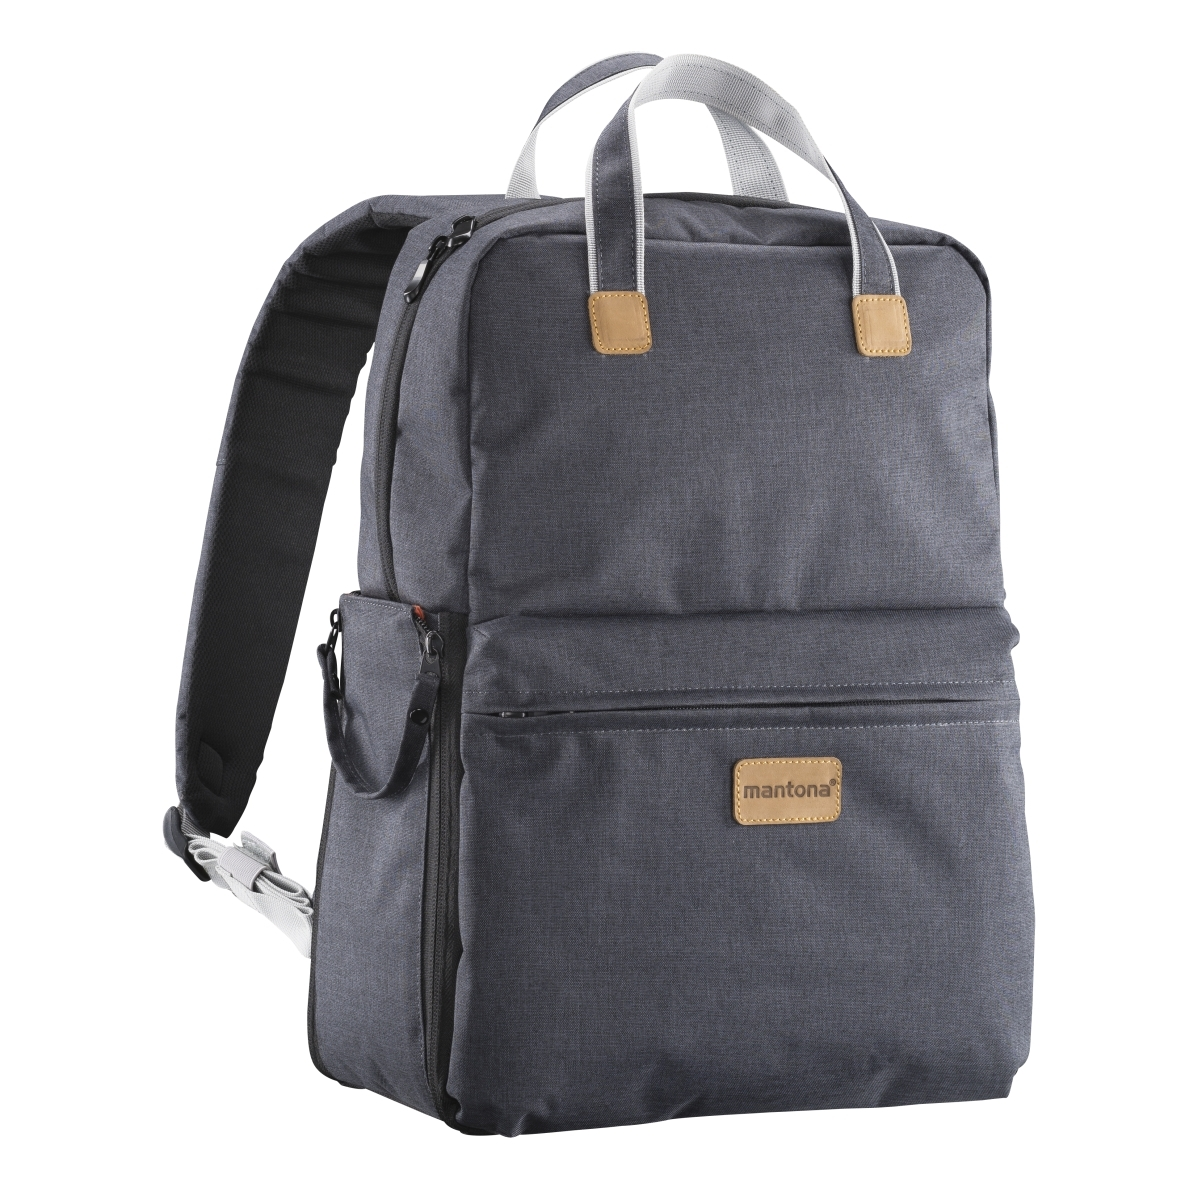 urban companion photo backpack & bag 2 in 1